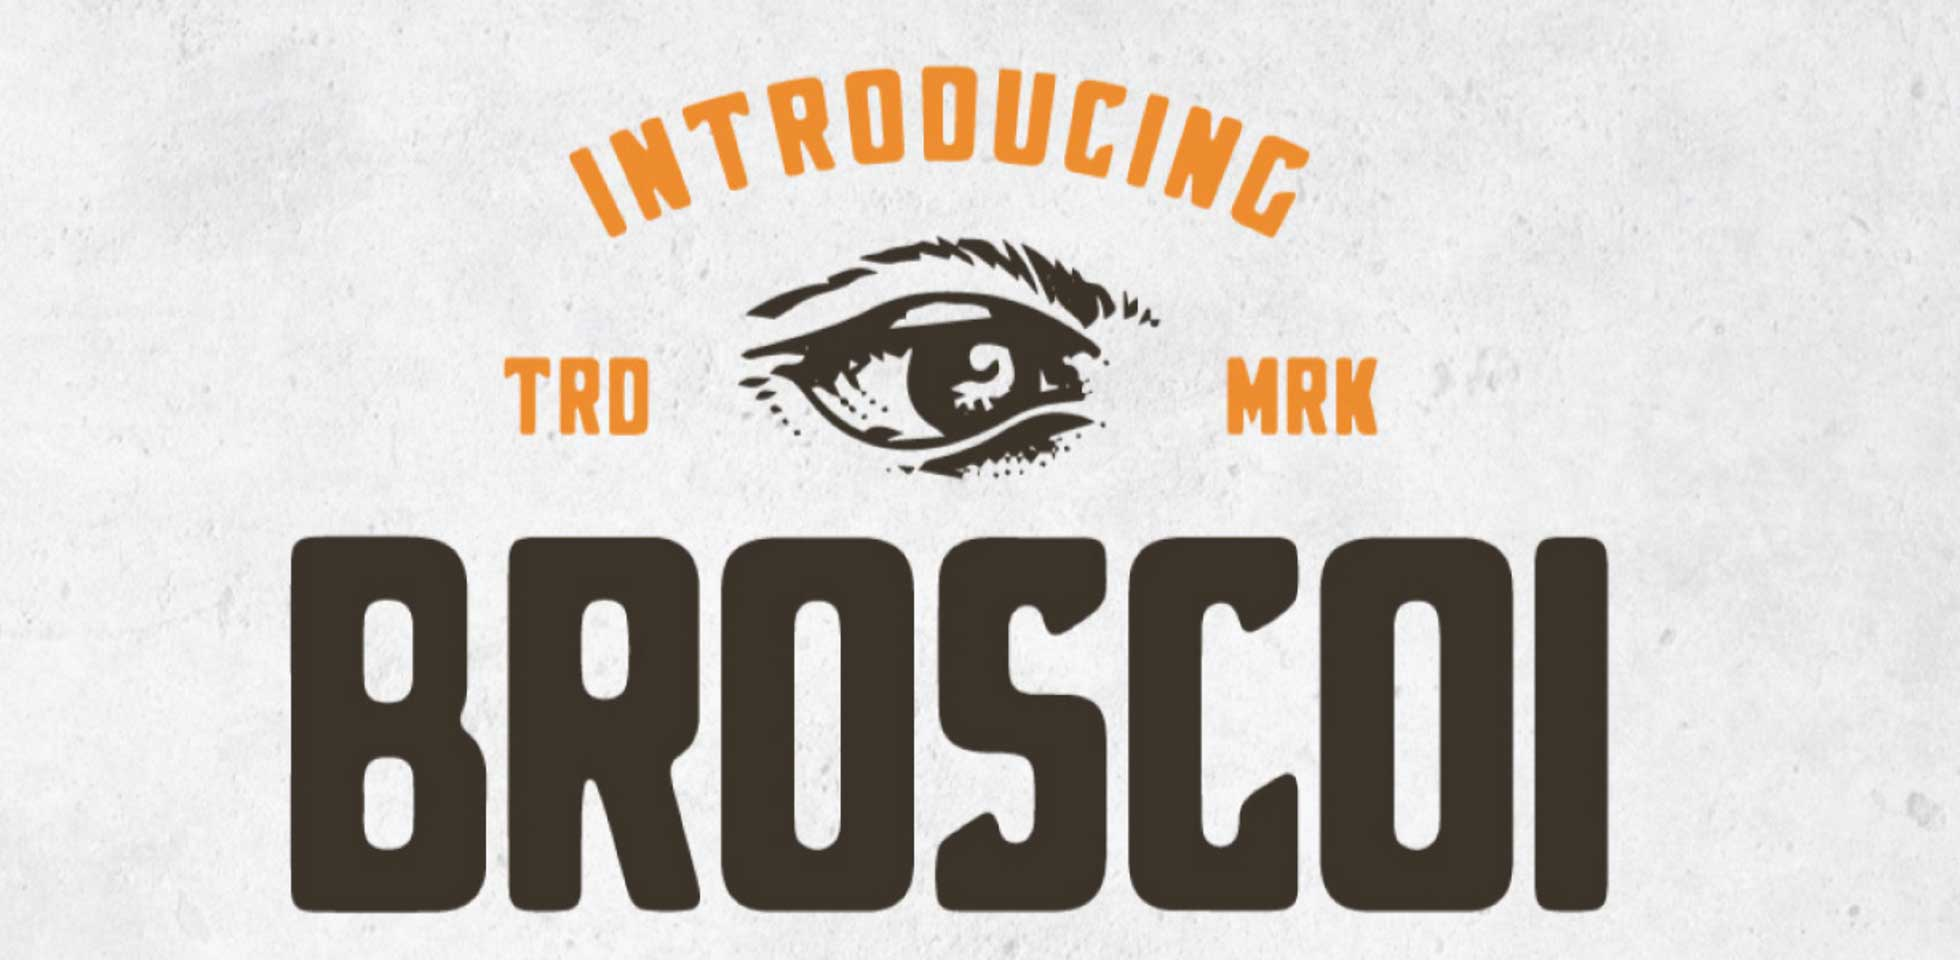 Free Download: Broscoi Font